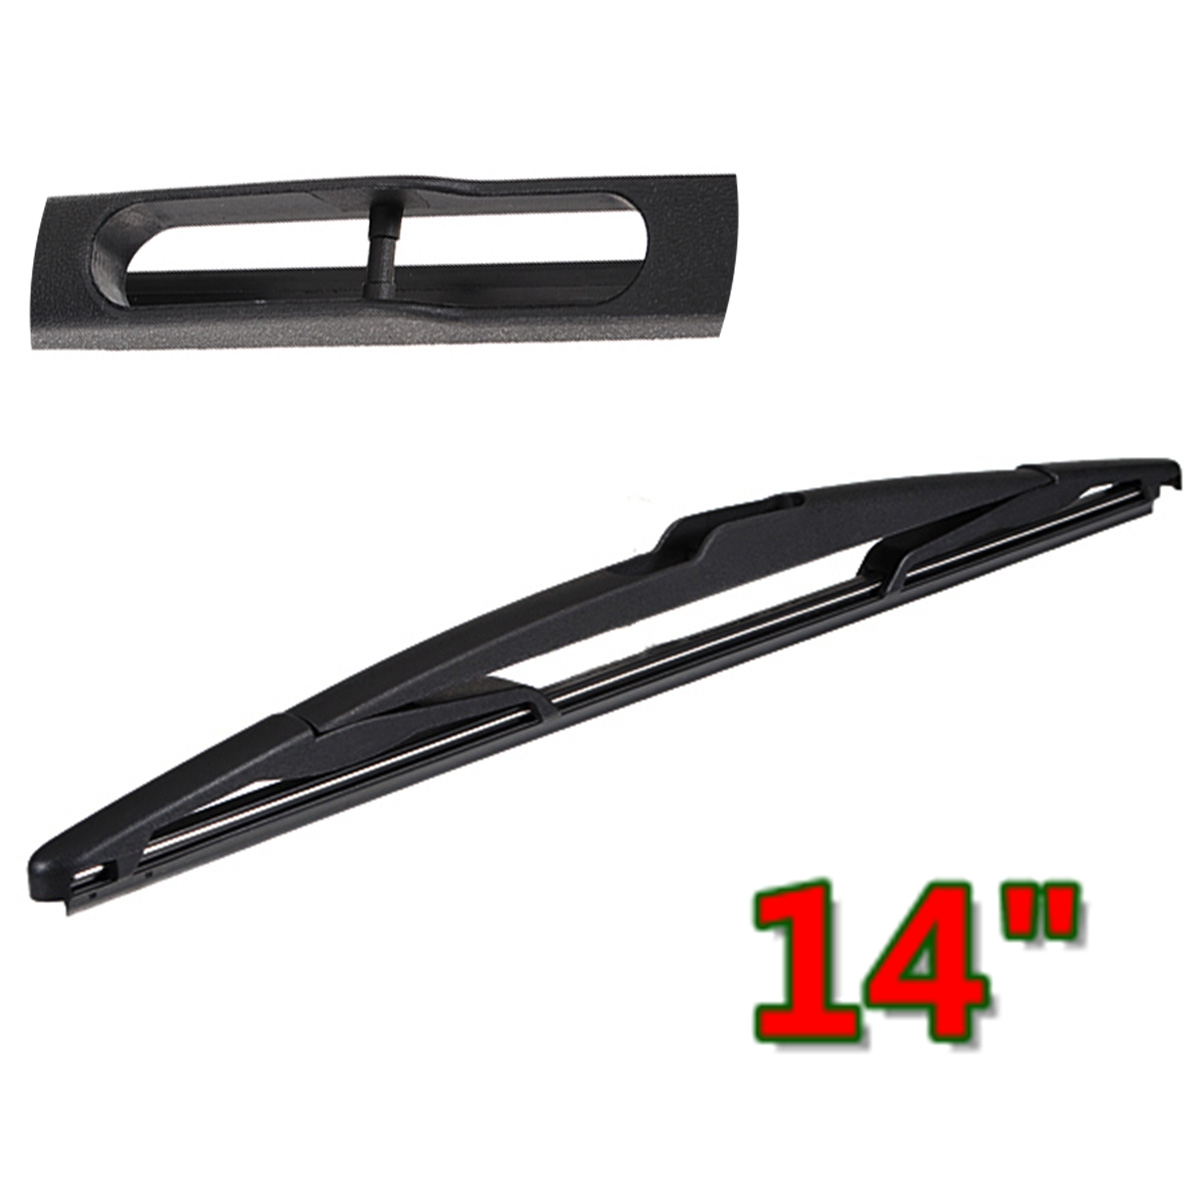 Rear Window Windshield Windscreen Wiper Blade 14 Inch For Peugeot 00-004 307 206(China)